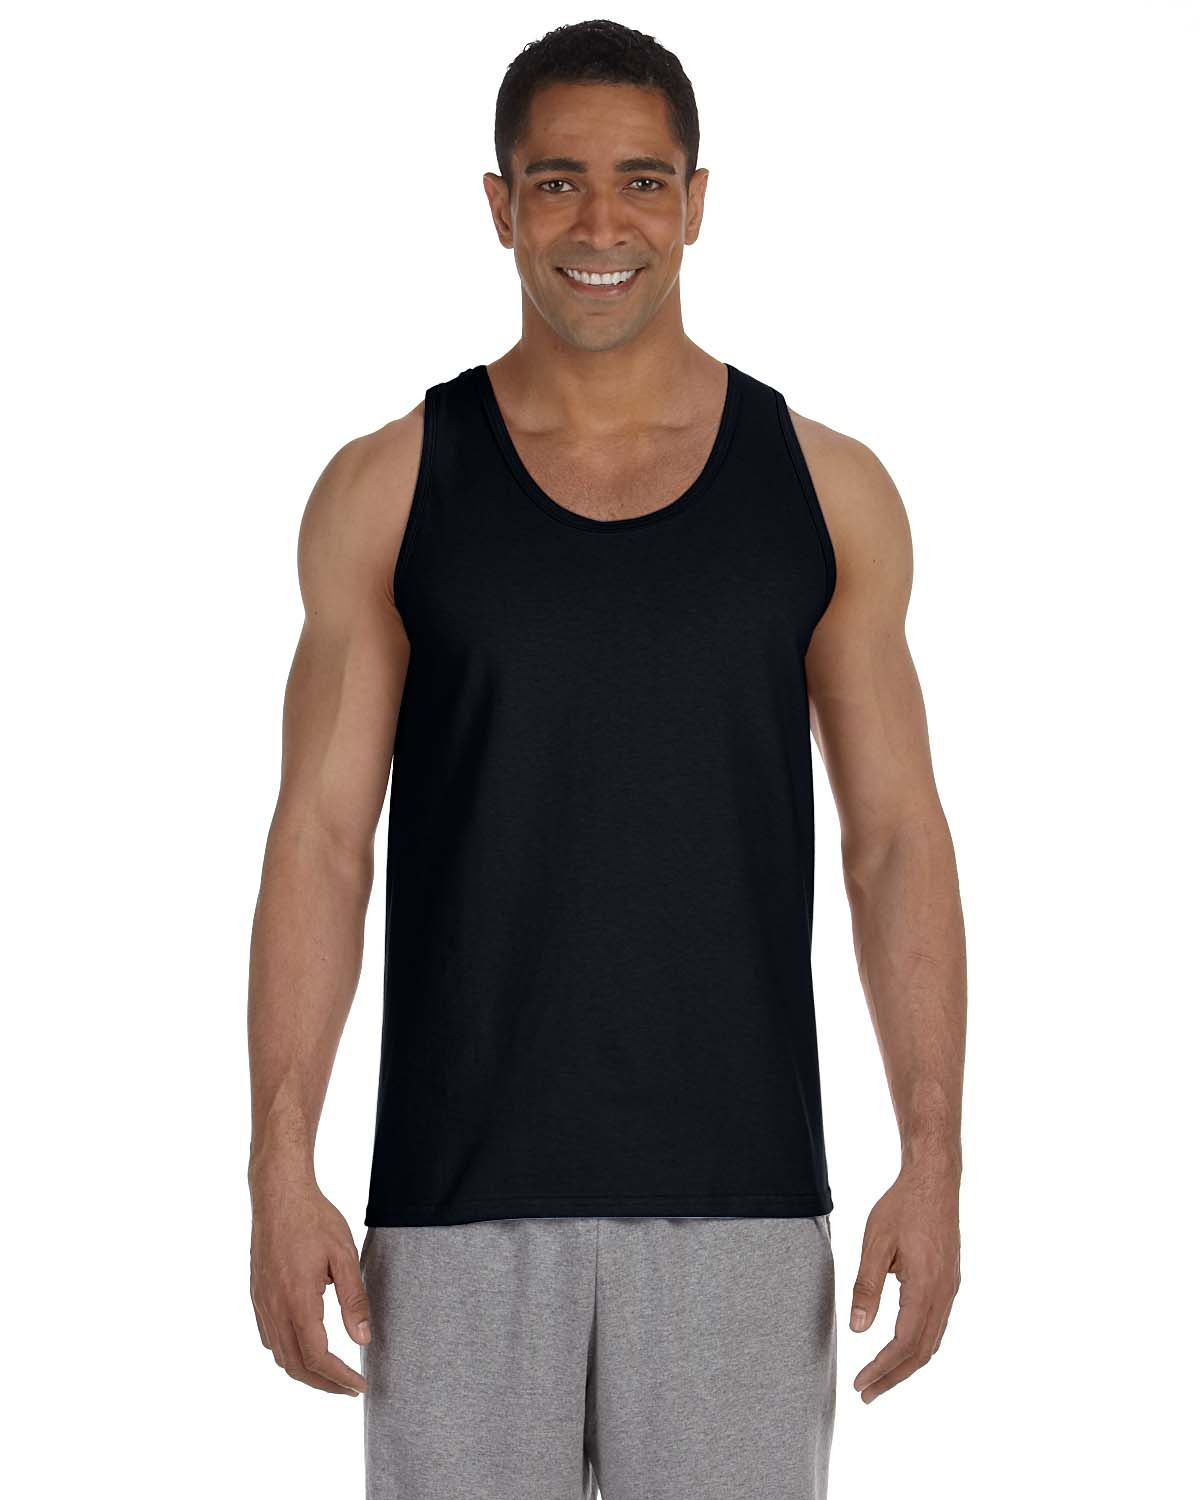 Find tank tops for men that are performance-ready. From the gym to a basketball game to an outing with friends, match your personal style with the right men's sleeveless shirt. .